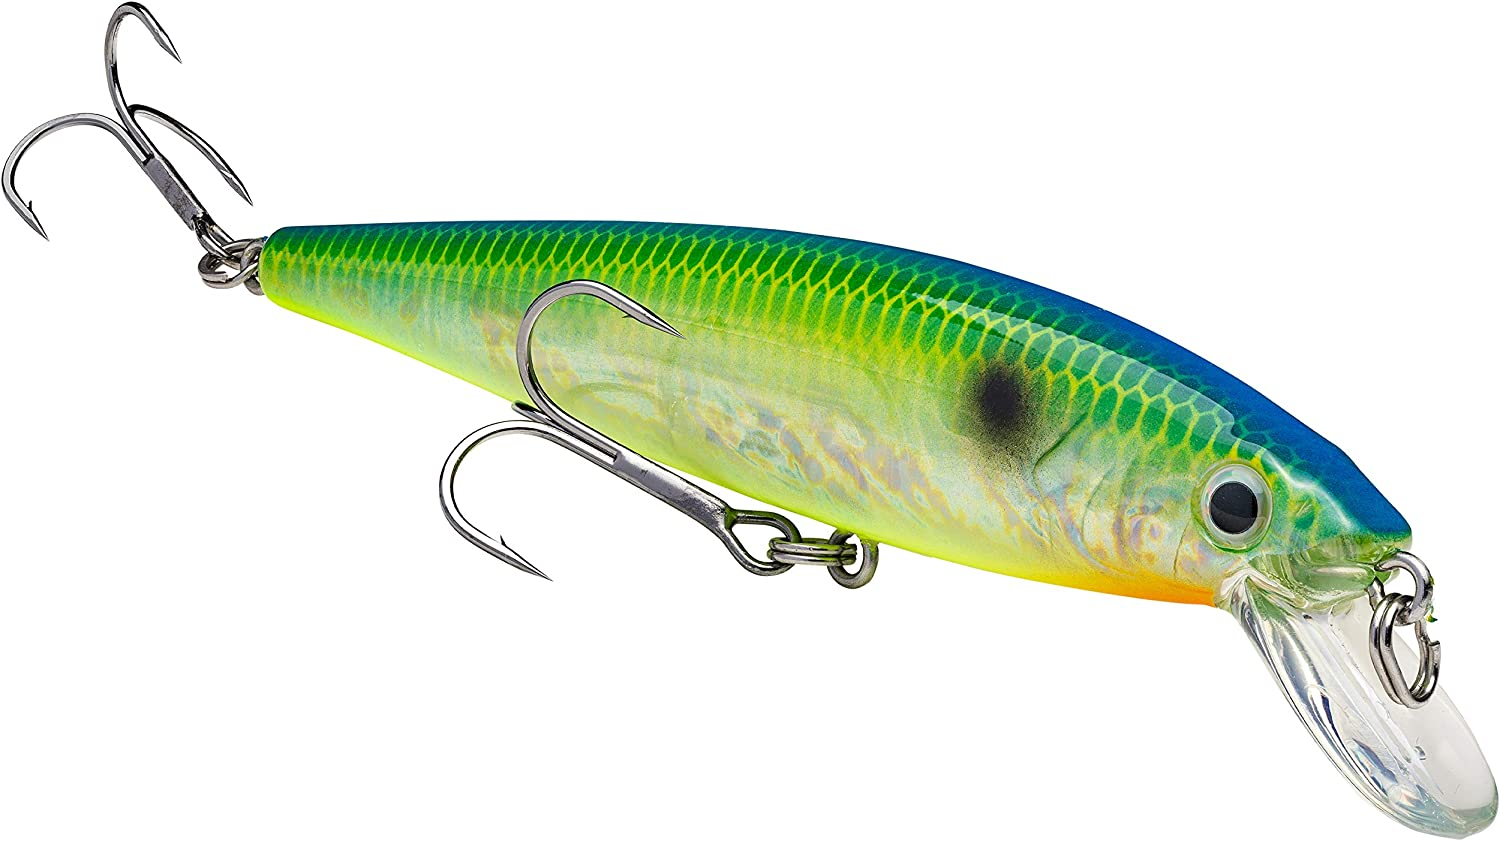 Strike King KVD jerkbaits